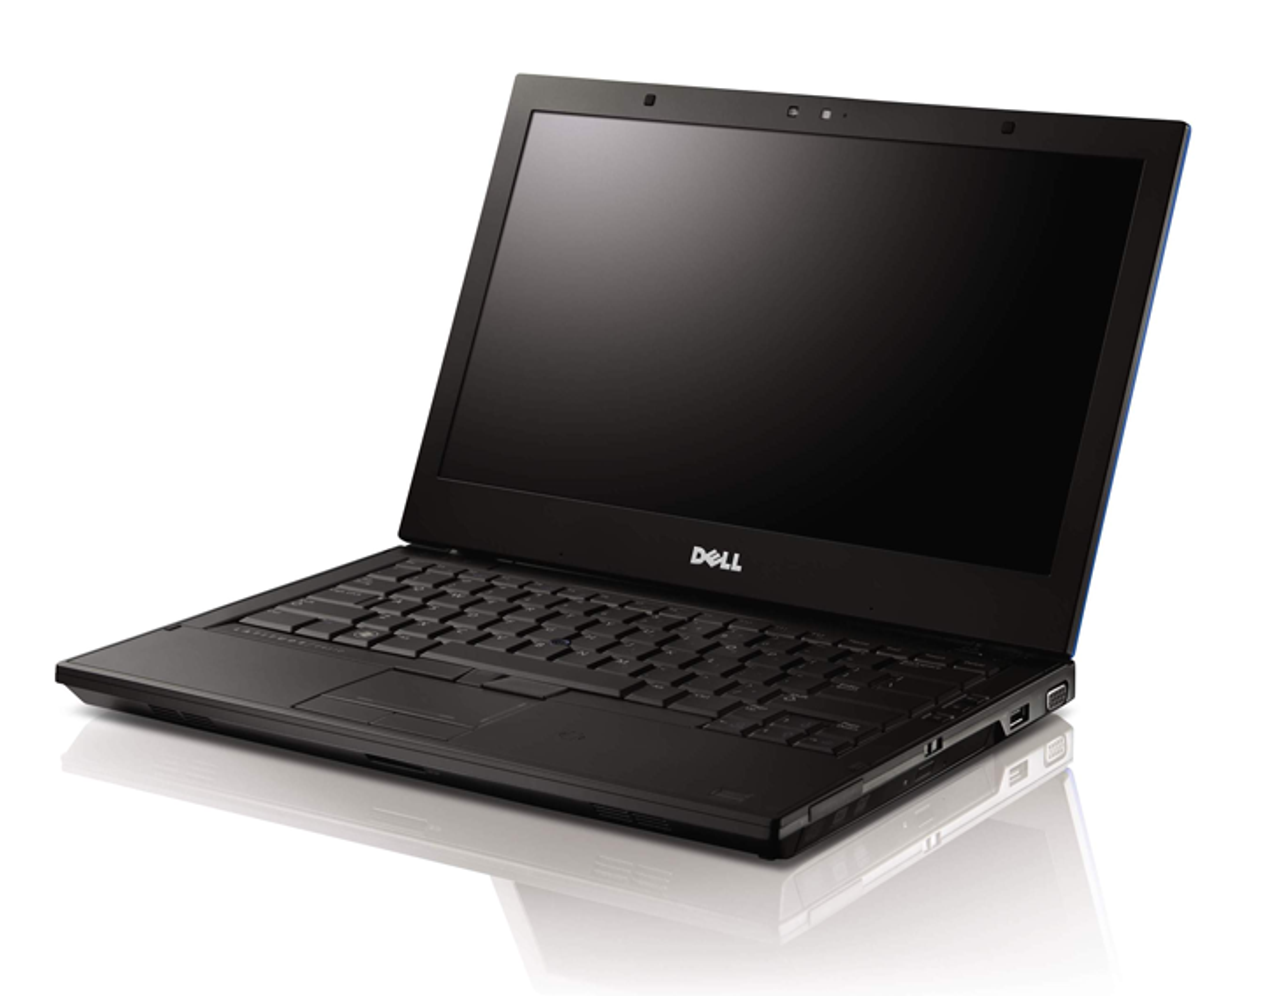 Dell Latitude E4310 Laptop Core i5 2.67GHz, 4GB Ram, 160GB HDD, DVD-RW, Windows 7 Pro 64 Notebook